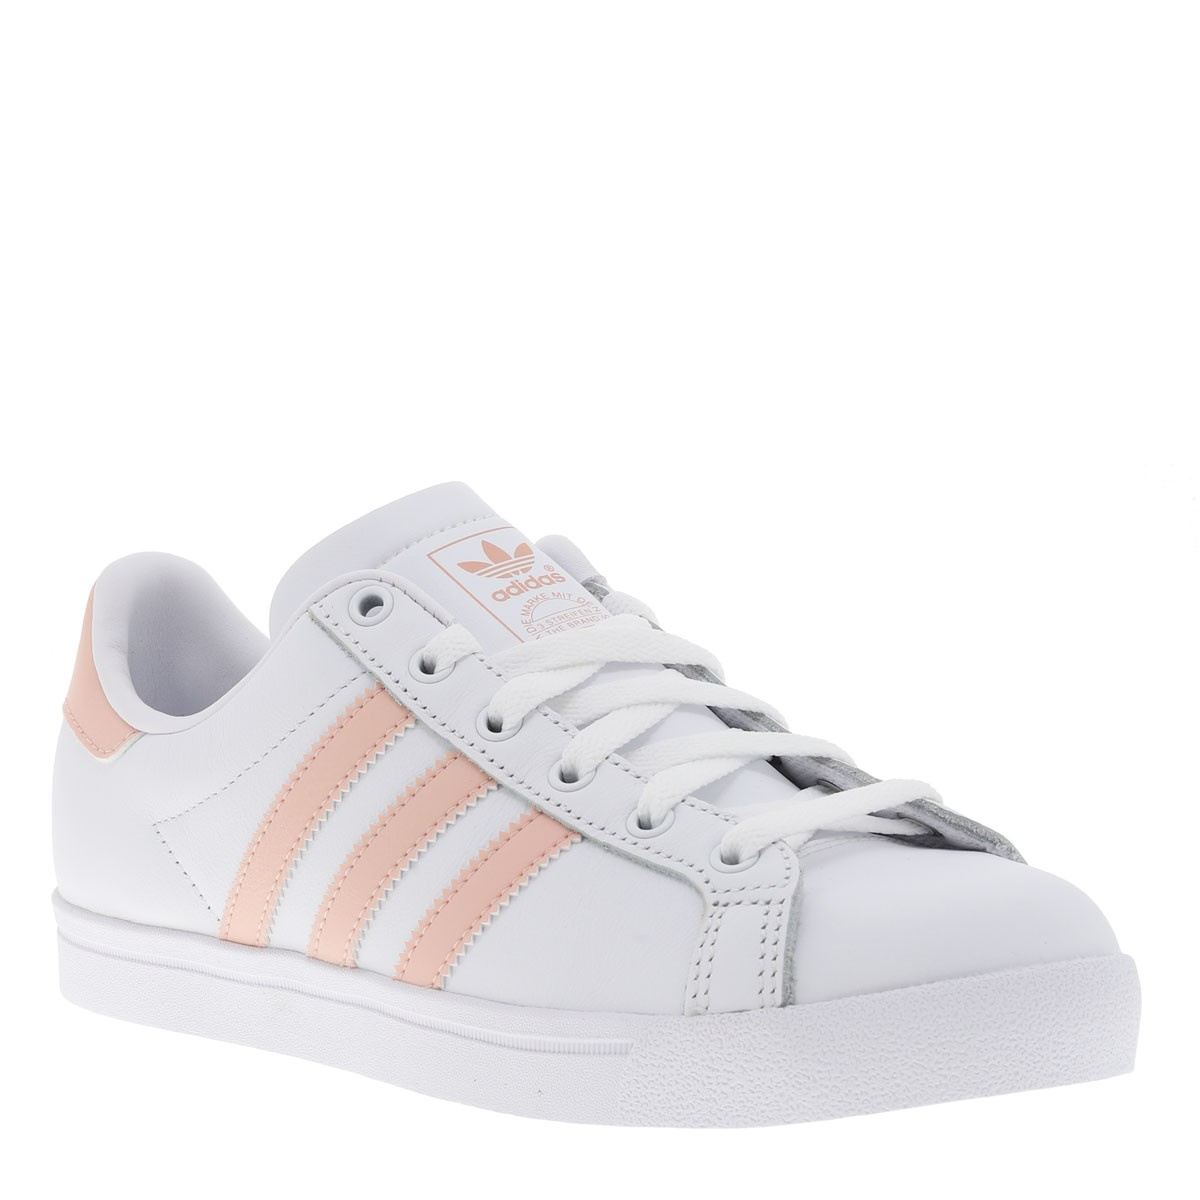 adidas baskets cuir court star homme